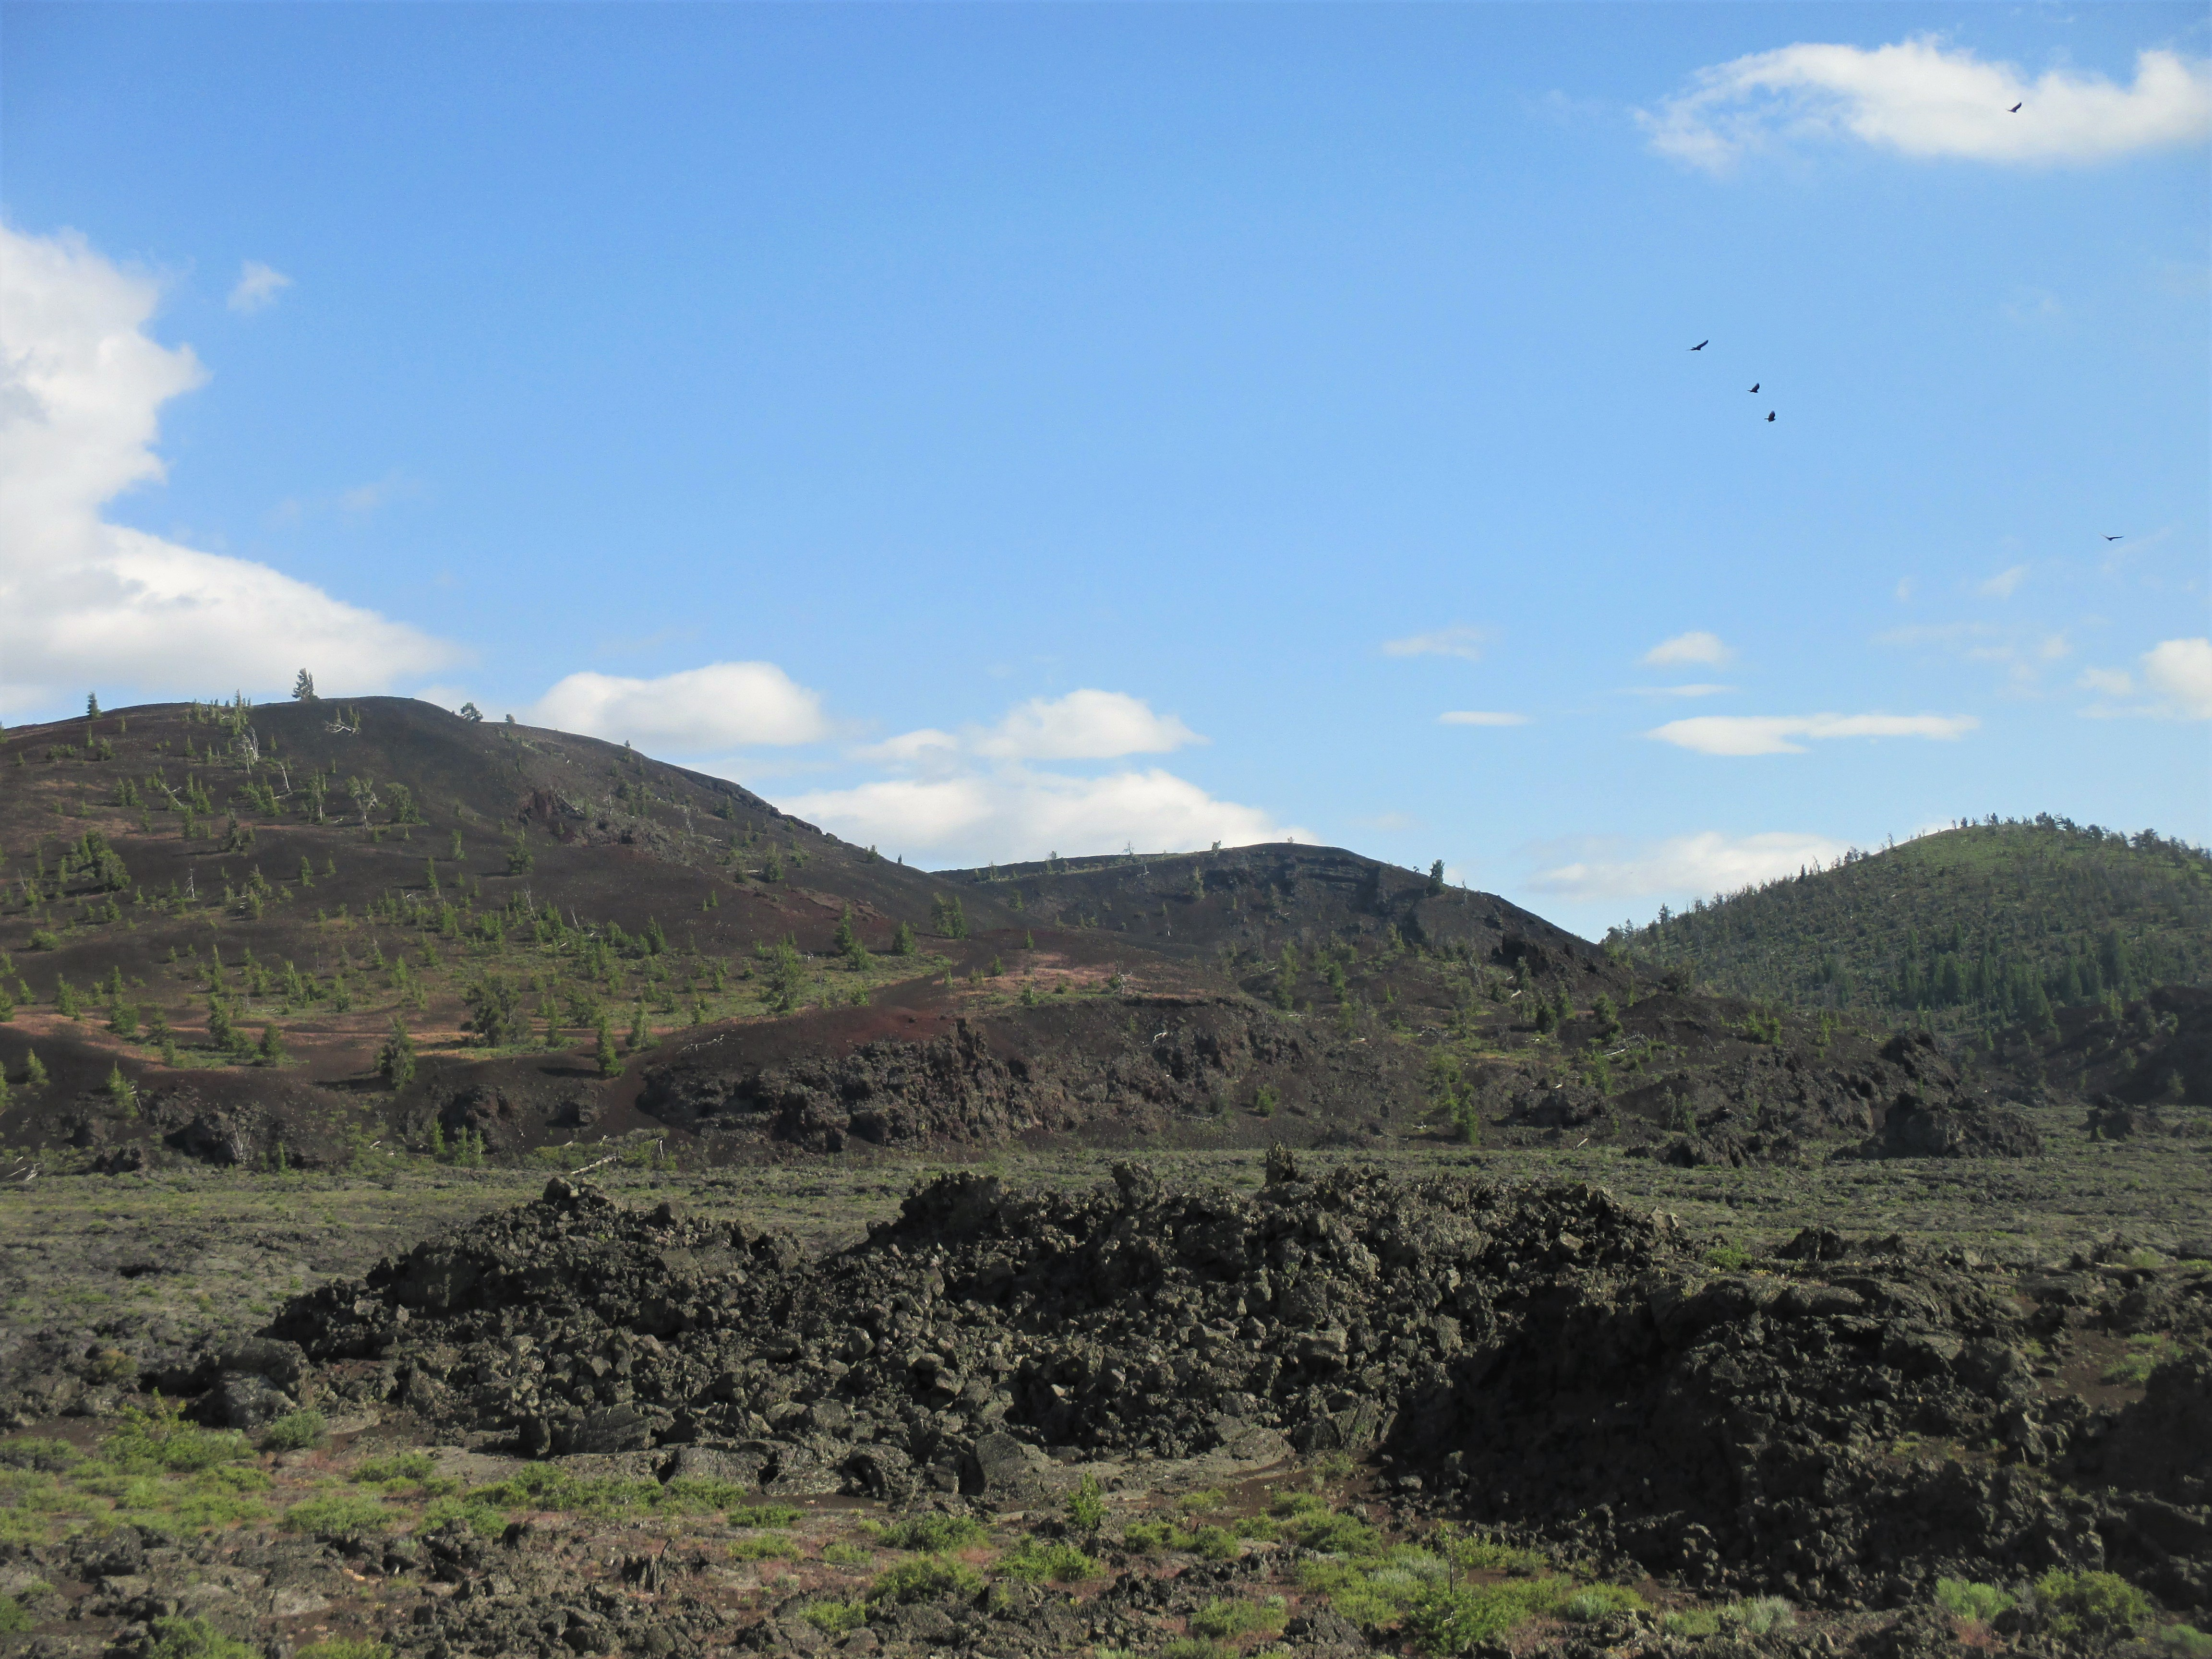 p cinder cones with vultures